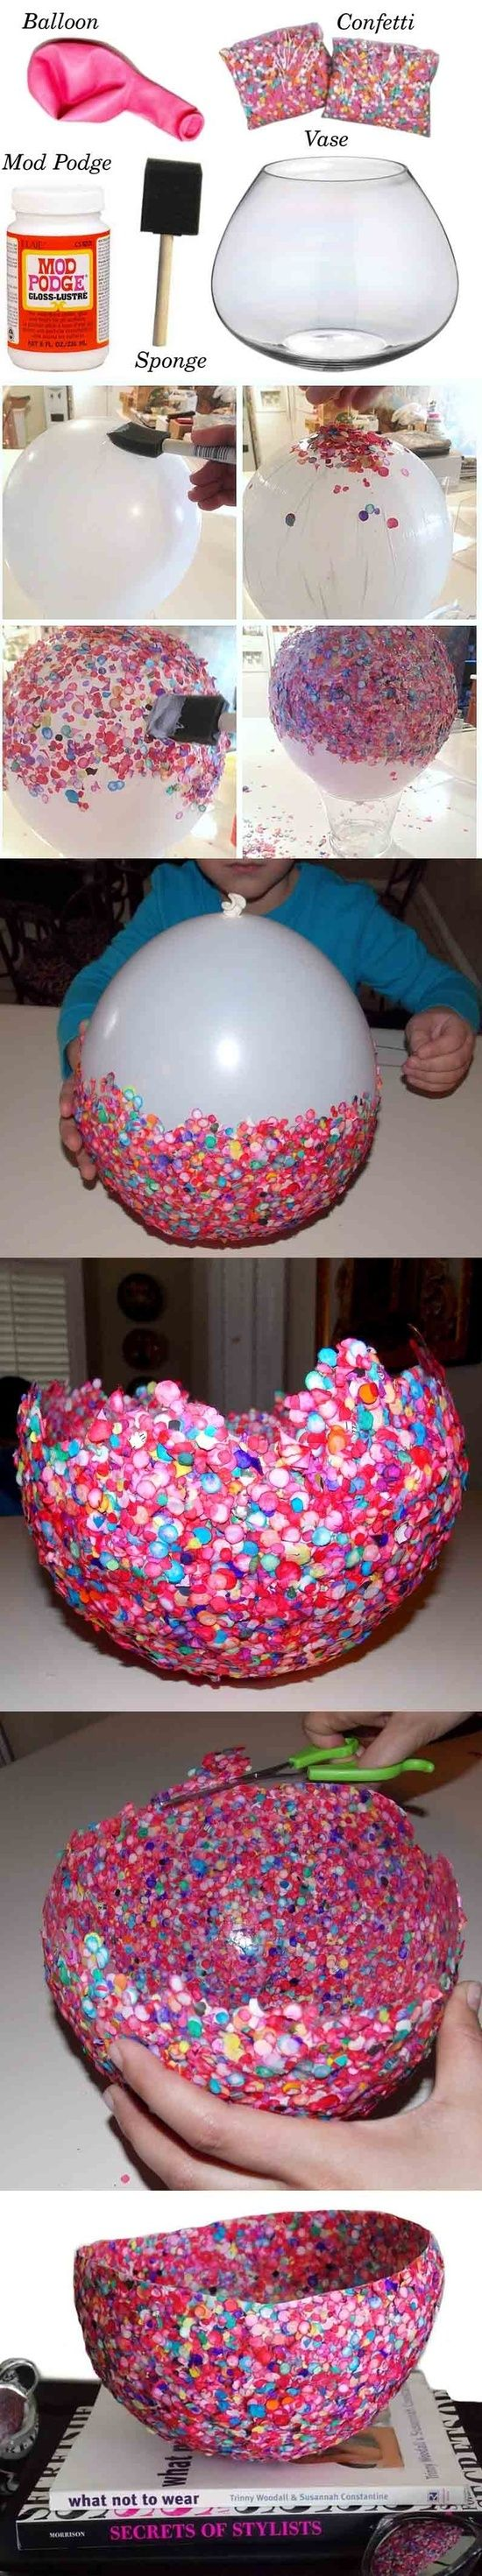 Cool confetti bowl! Great gift idea, and kid friendly;)